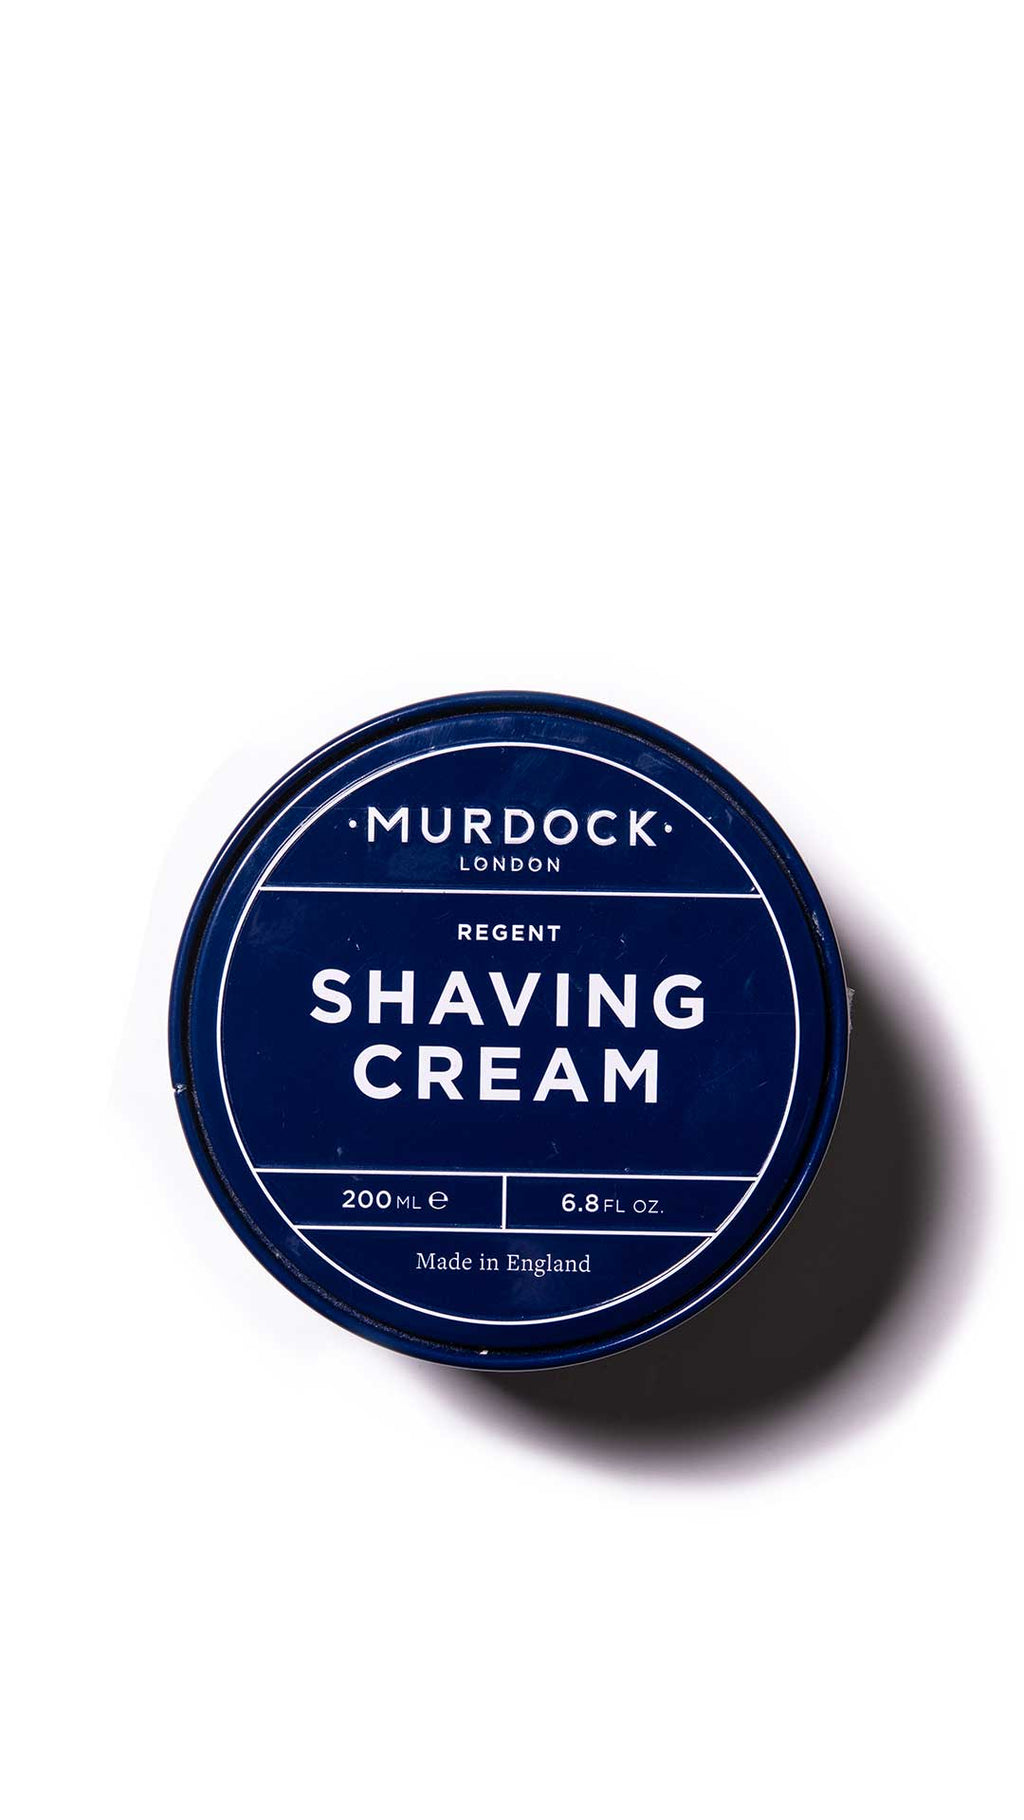 SHAVING CREAM - MURDOCK OF LONDON